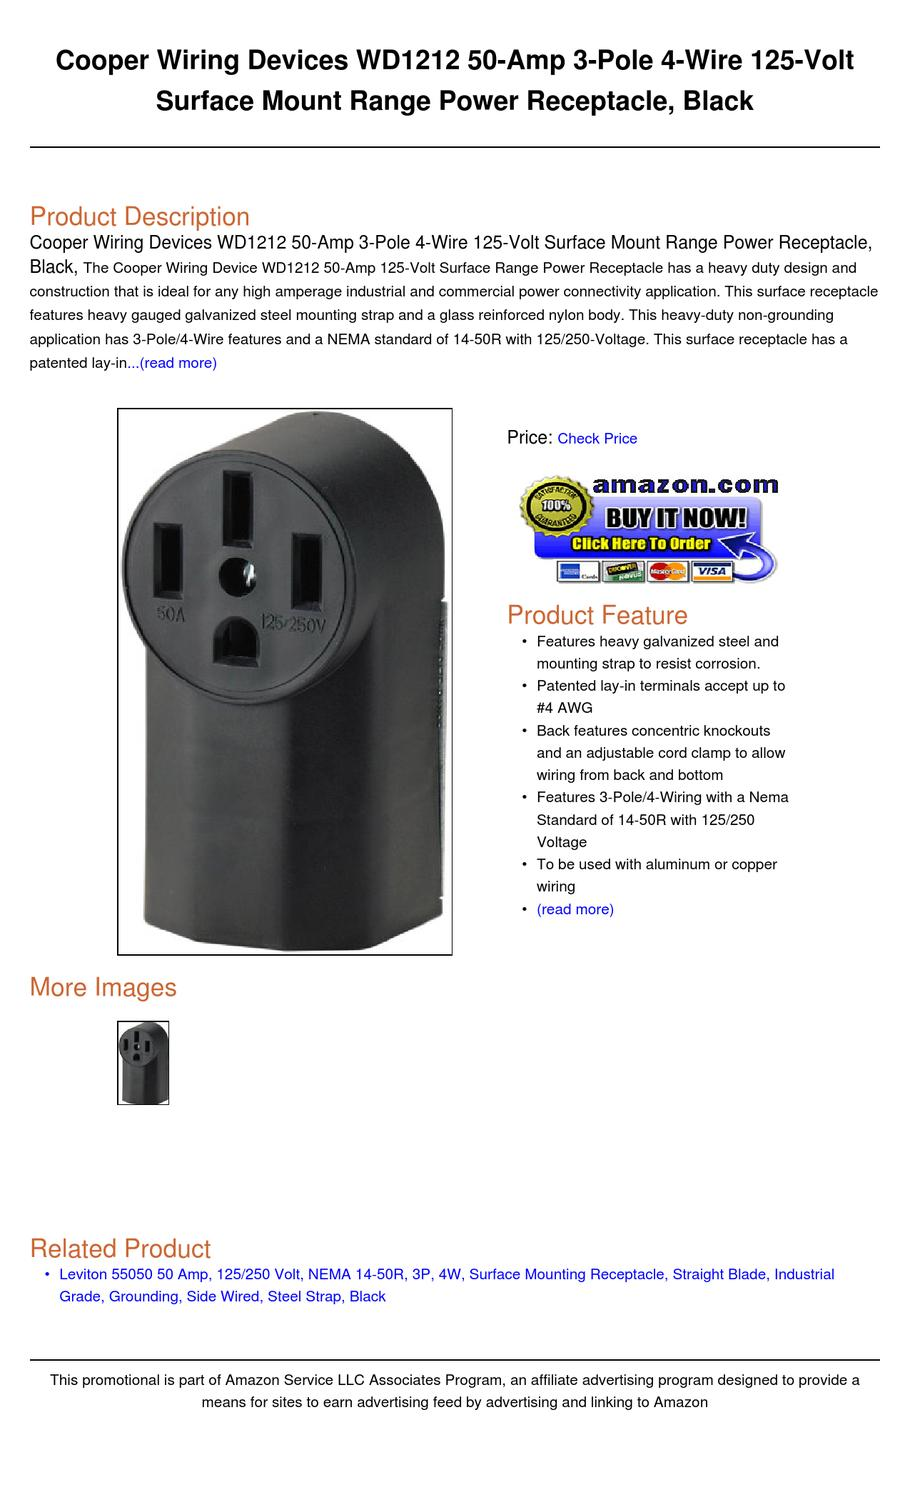 cooper wiring devices wd1212 50 amp 3 pole 4 wire 125 volt surface mount range power receptacle. Black Bedroom Furniture Sets. Home Design Ideas